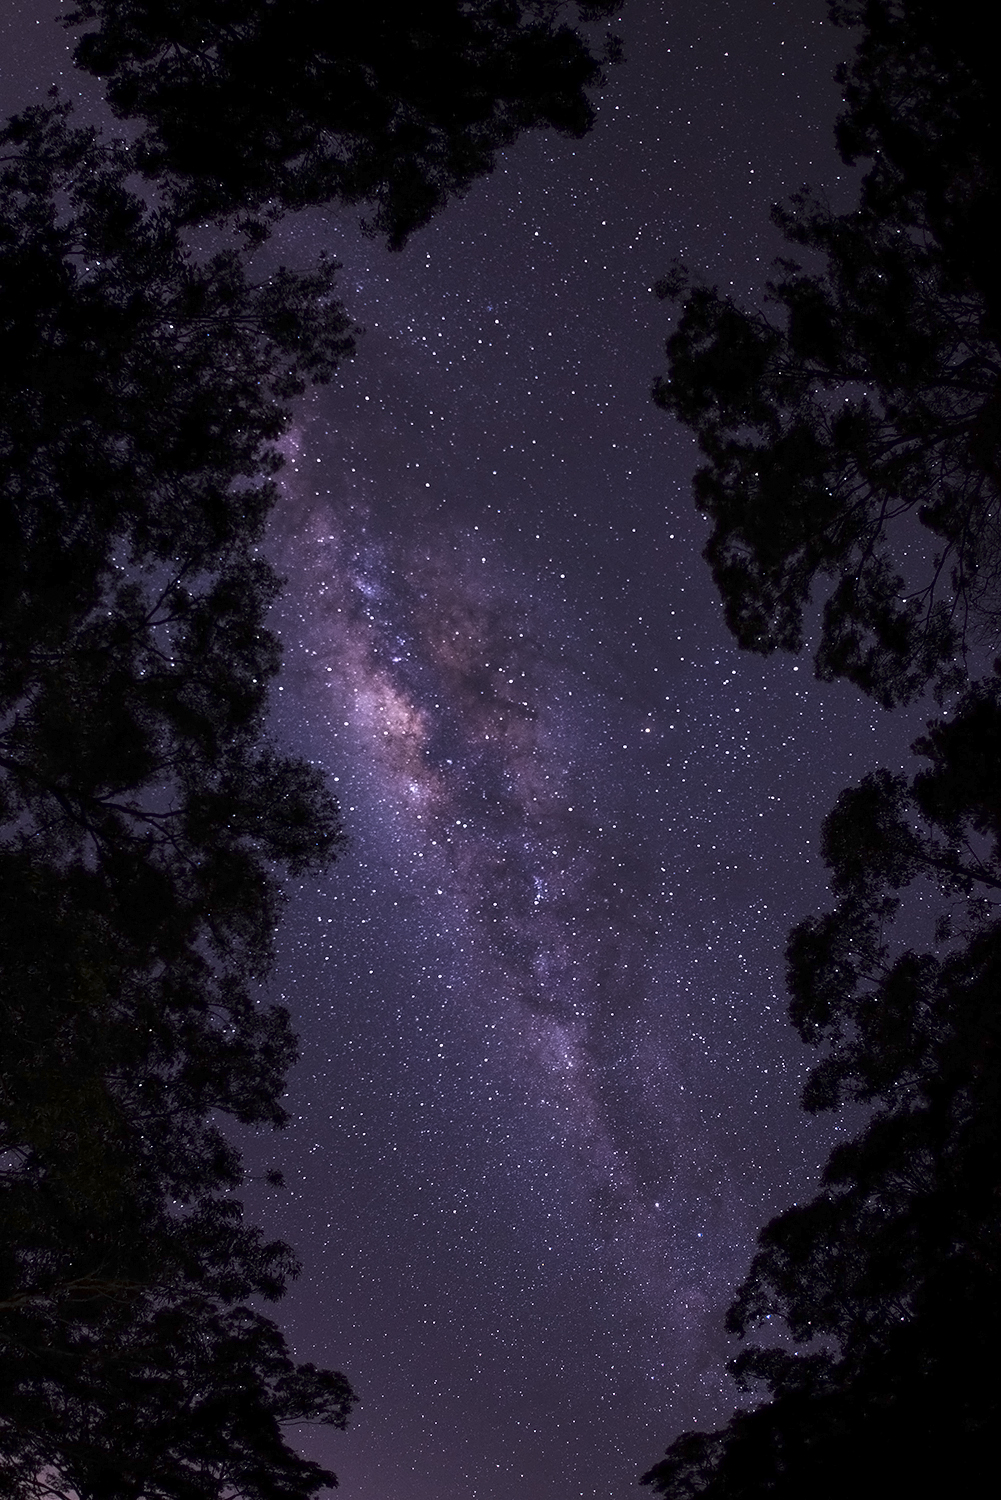 Clear Summer Skies Stargazing. Shot by Luke G Smith - User Contributed